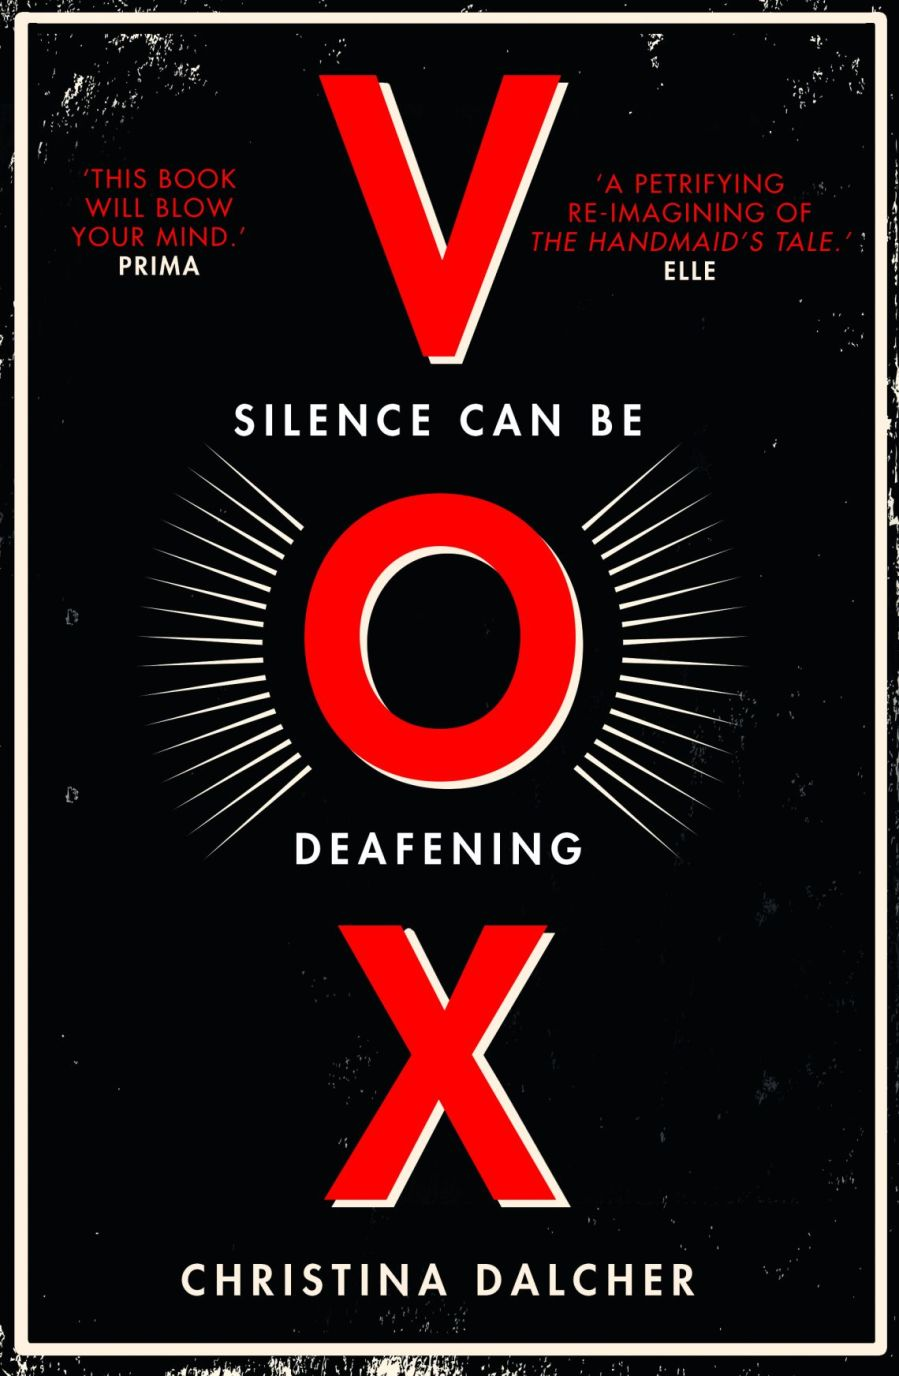 Book cover of Vox: Silence can be deafening by Christina Dalcher